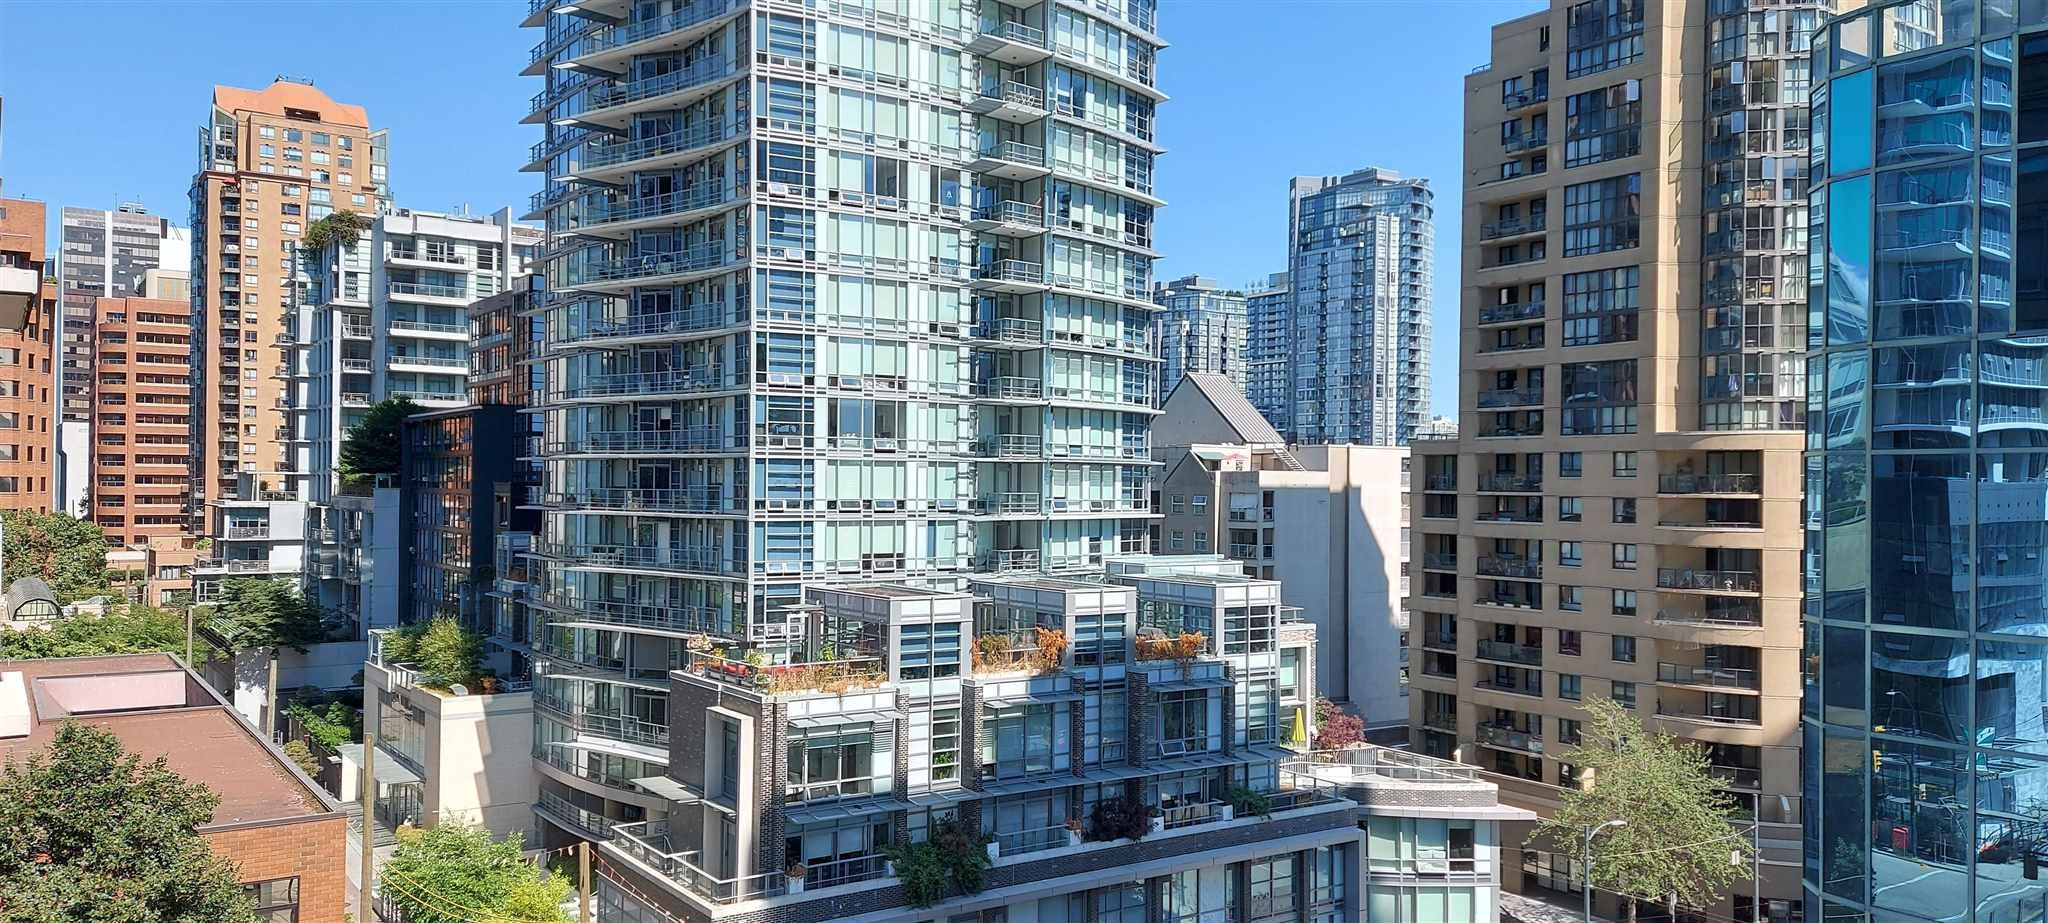 """Main Photo: 807 1308 HORNBY Street in Vancouver: Downtown VW Condo for sale in """"Salt"""" (Vancouver West)  : MLS®# R2605361"""